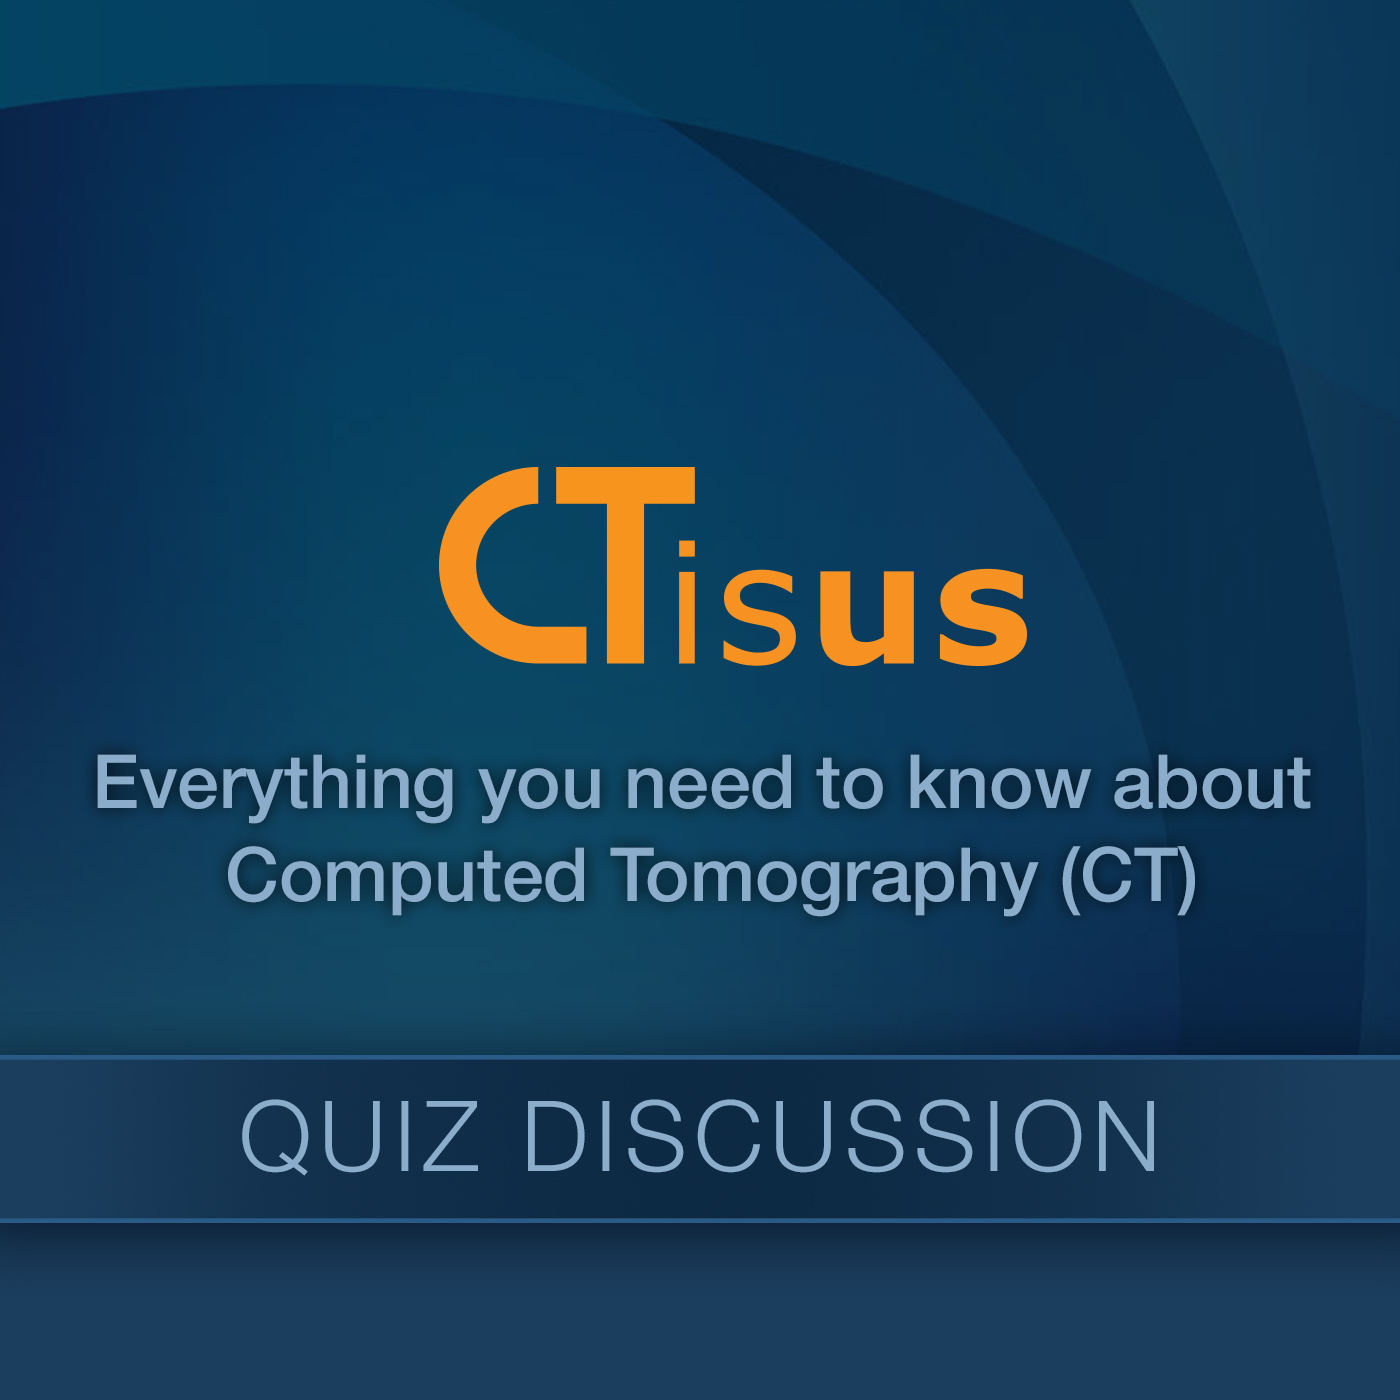 Quiz Discussions - CTisus.com